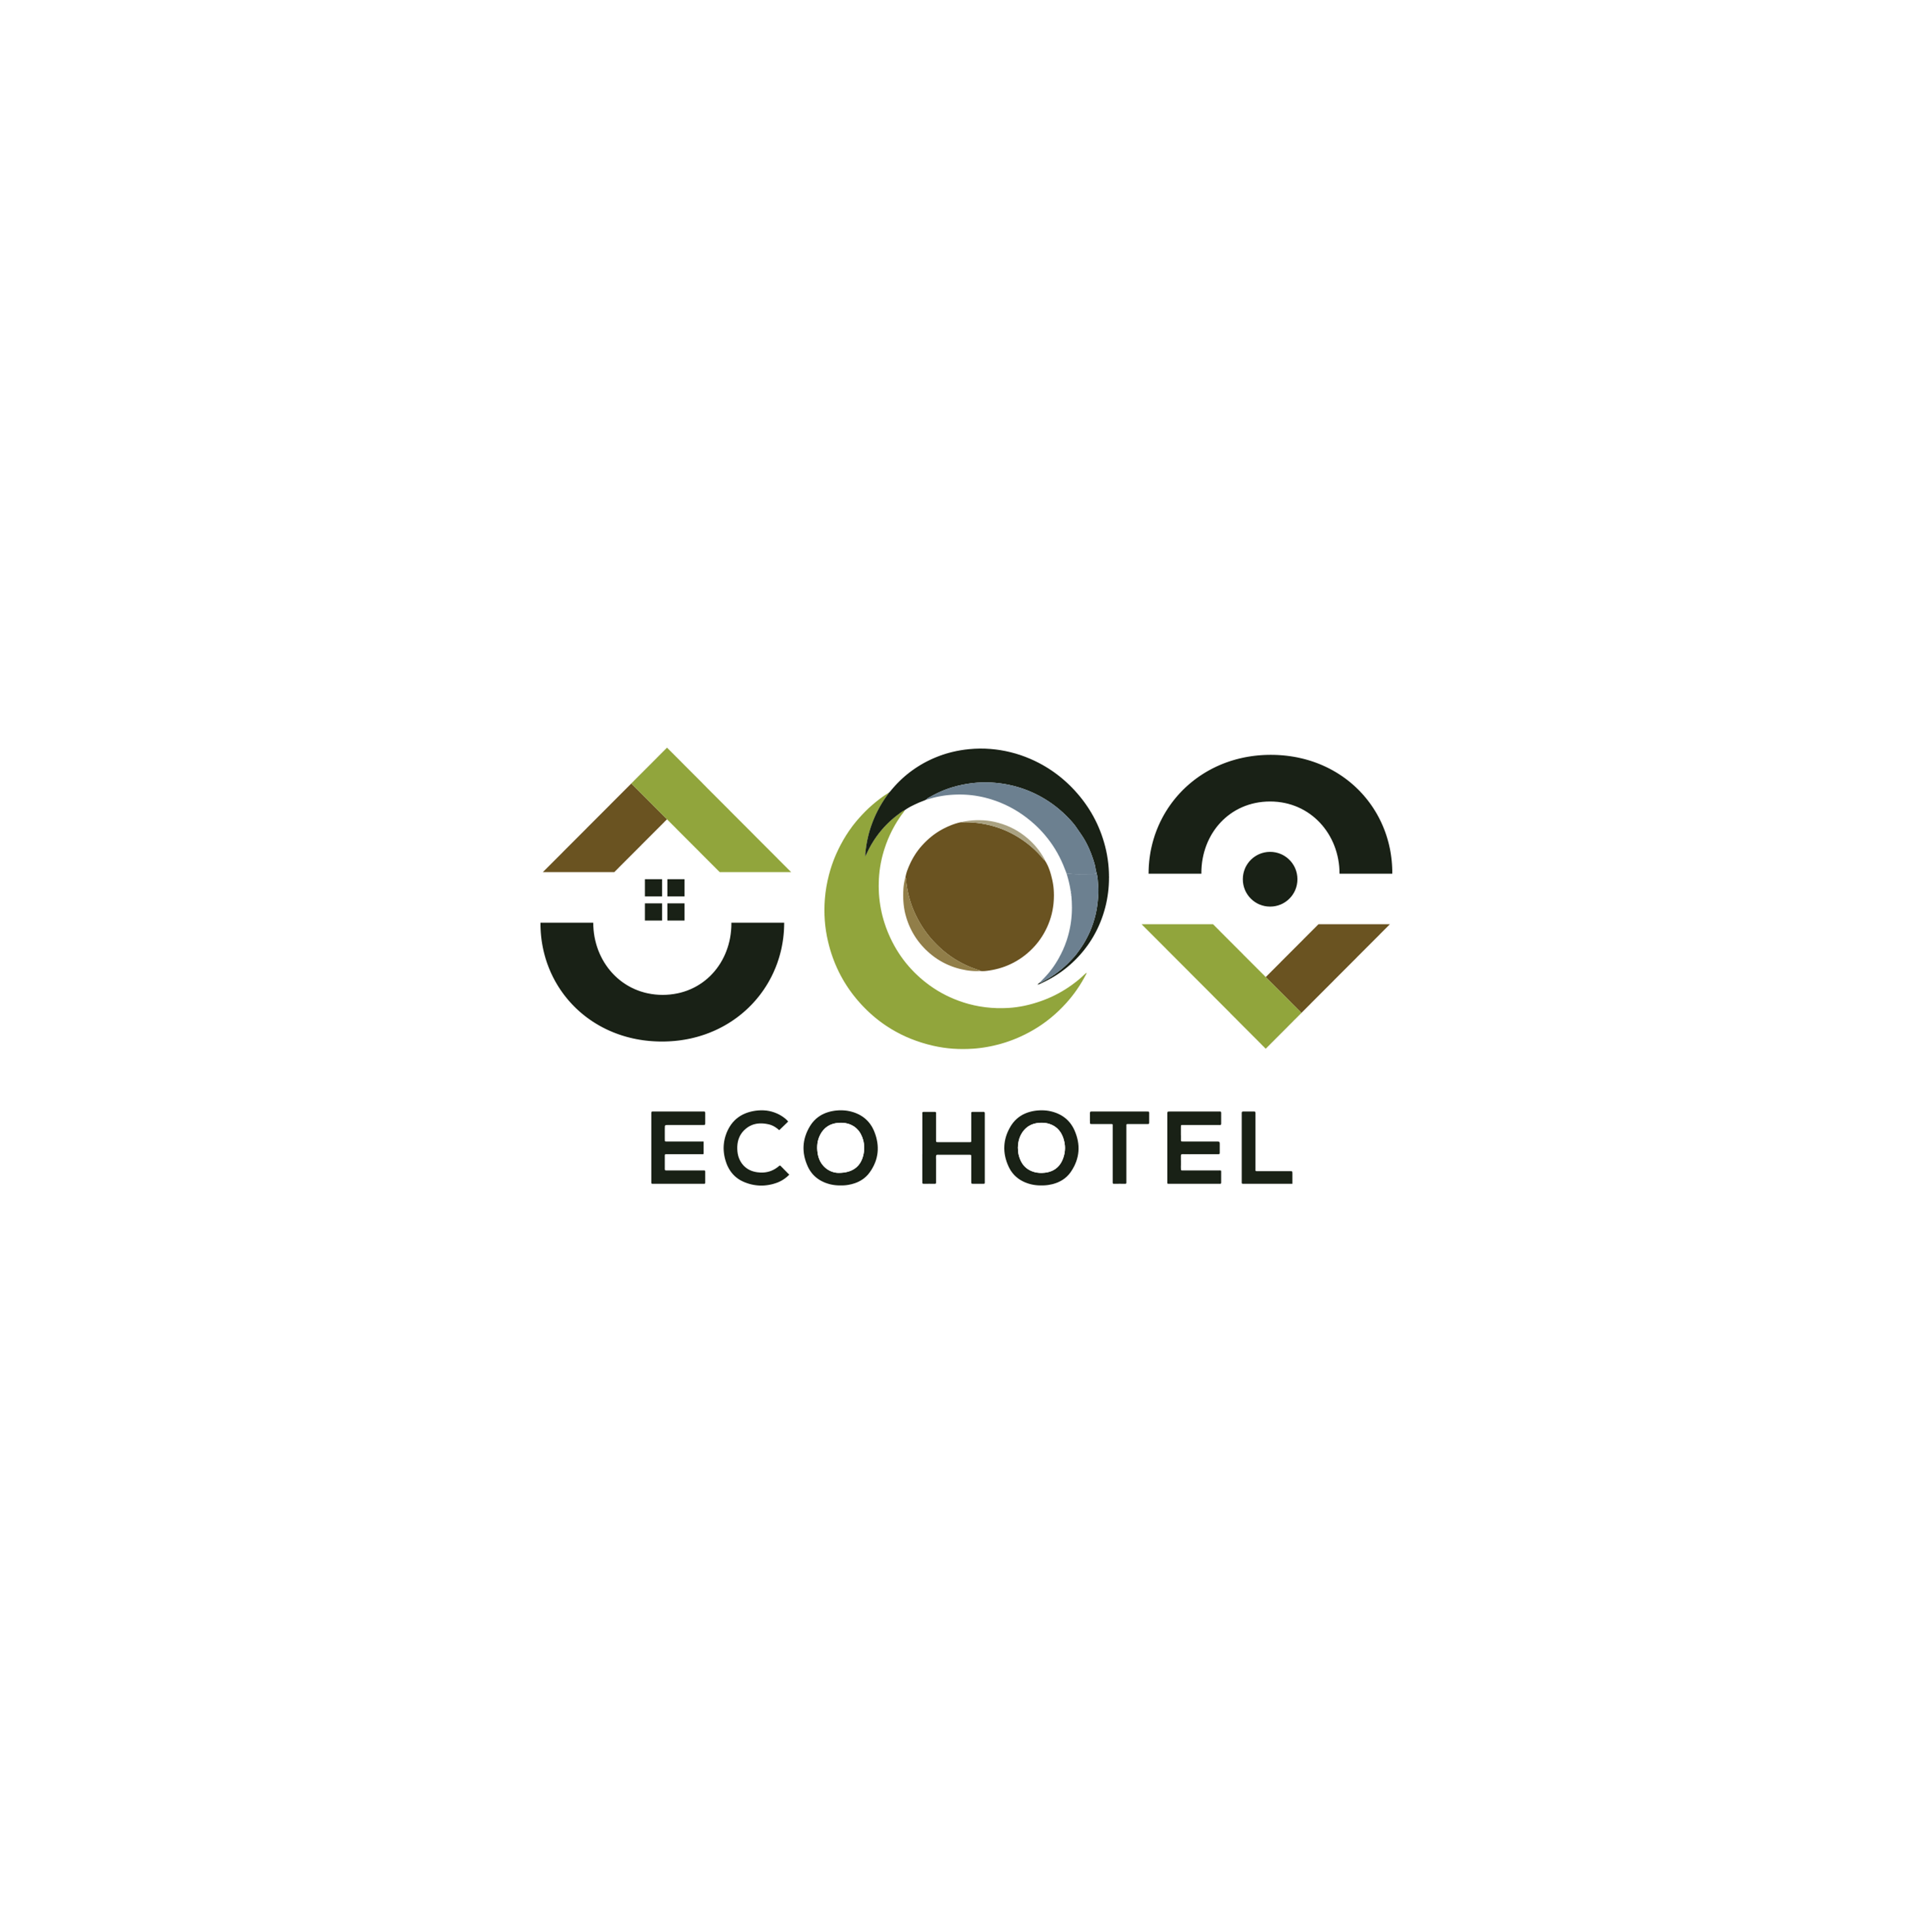 Eco Hotel Logo Design